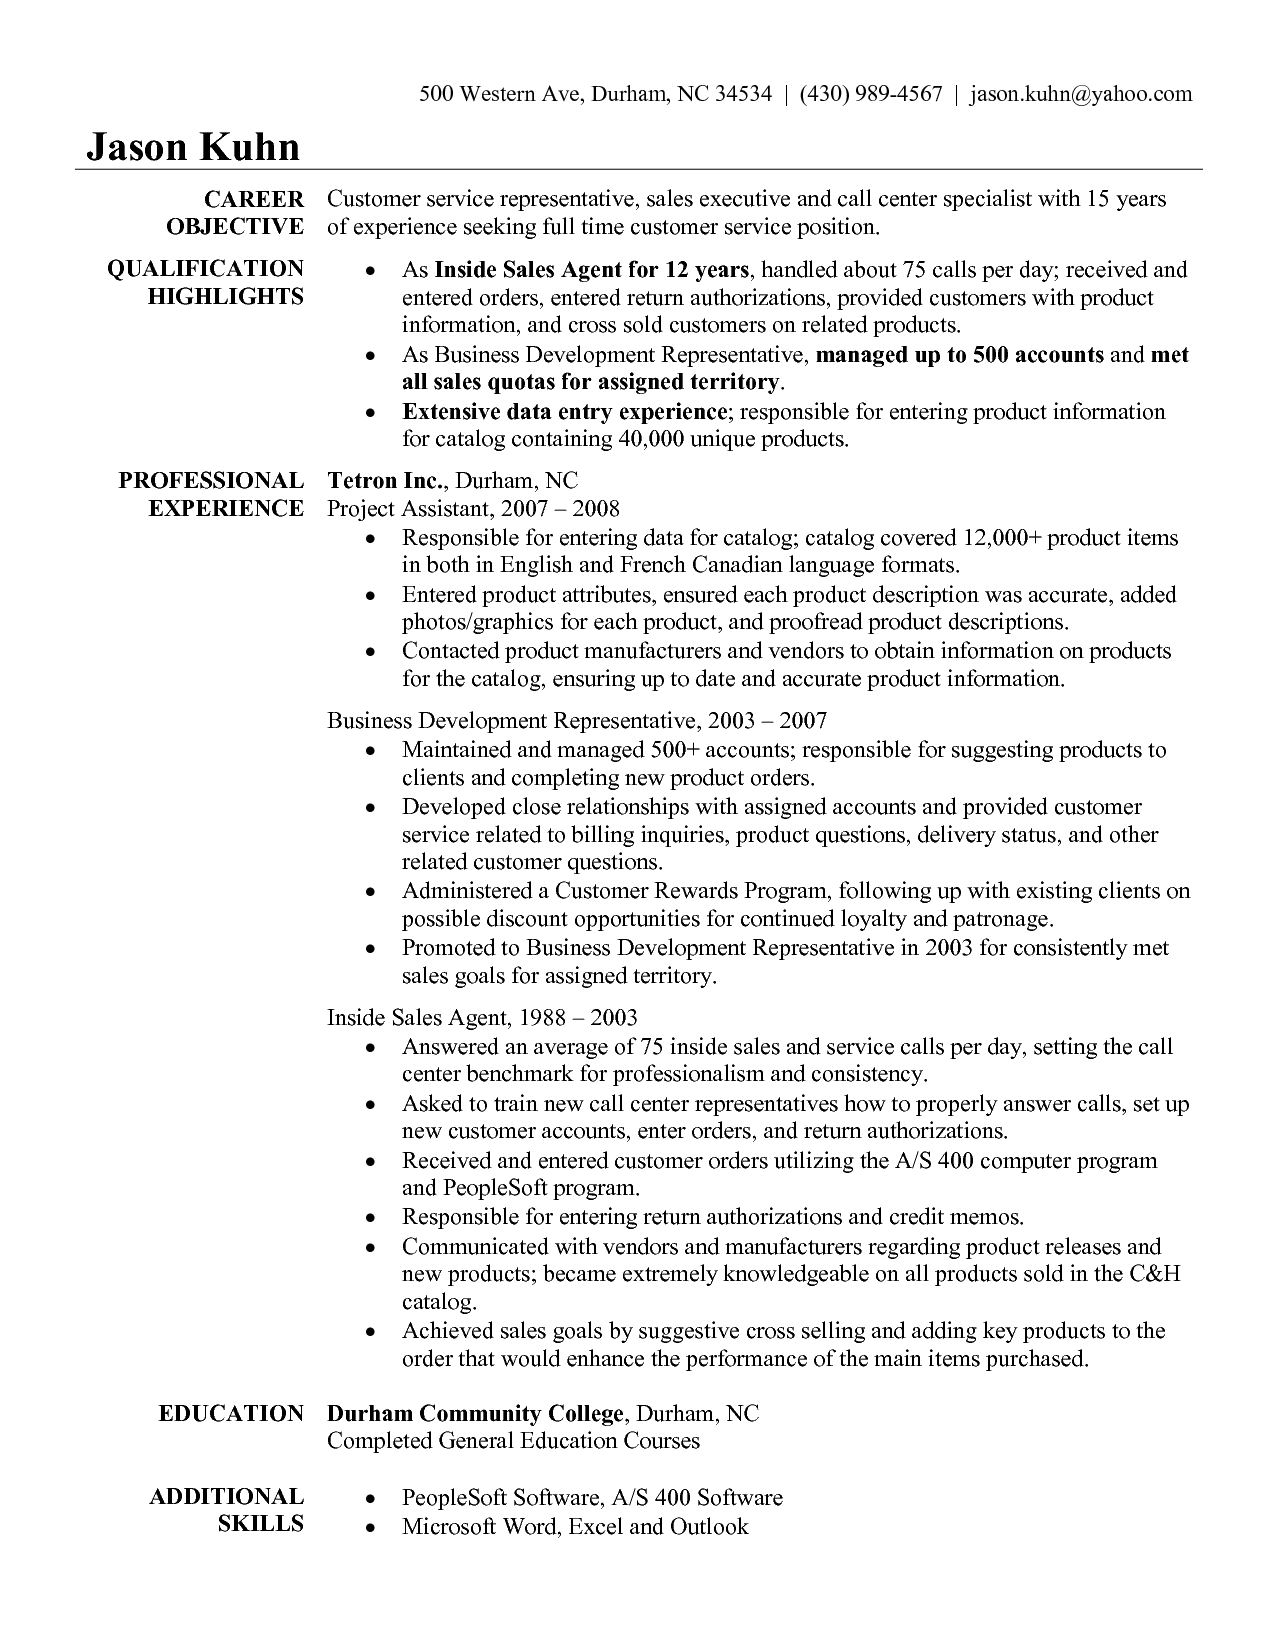 Resume Objectives For Customer Service Insurance Claims Representative Resume Sample  Httpwww